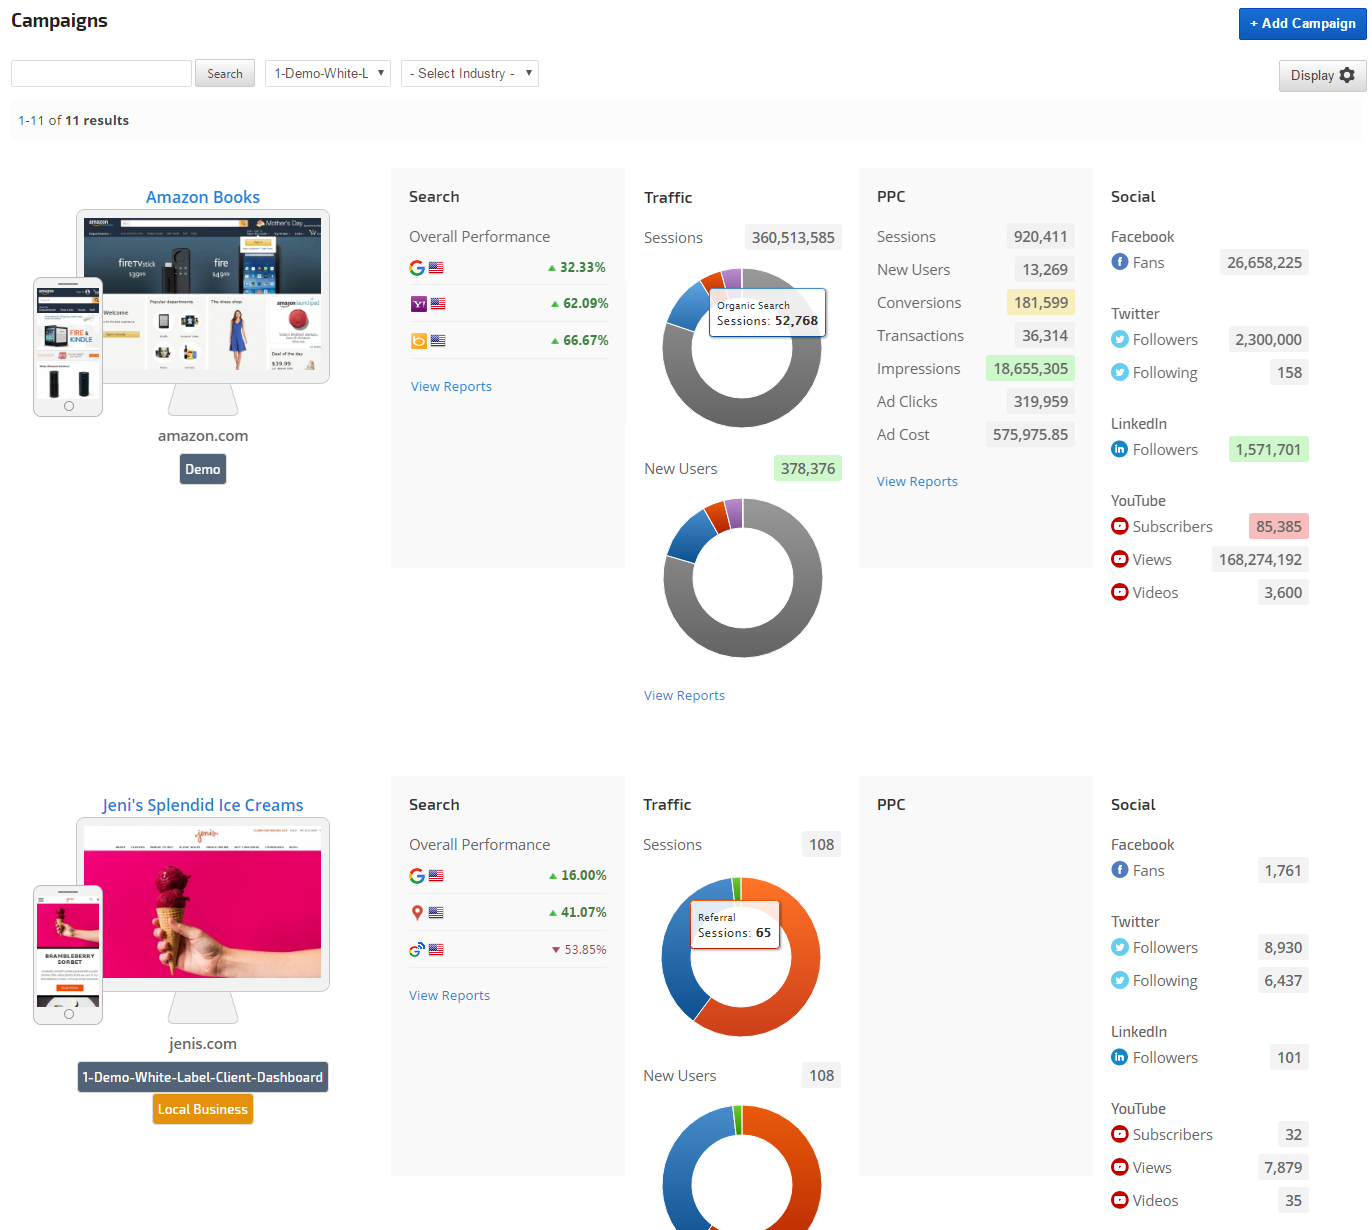 Account Campaigns Pro View